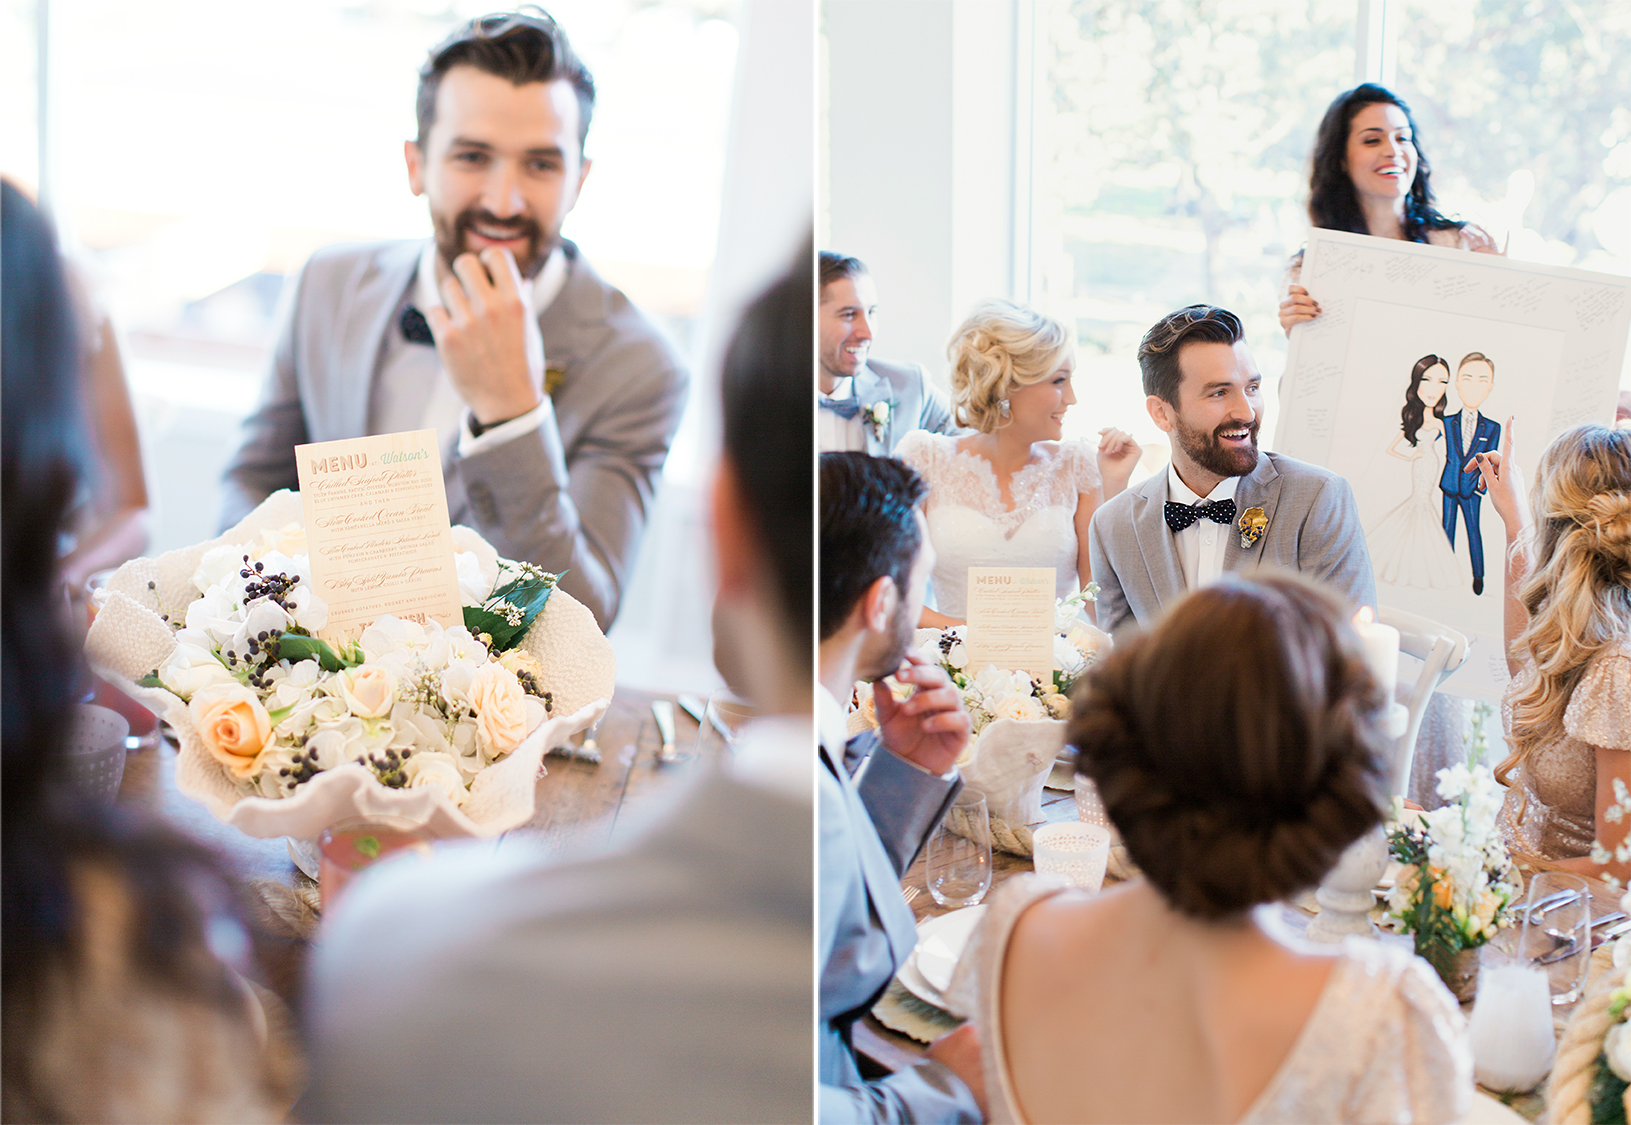 Aaron-Favaloro-Wedding-Love-Note-